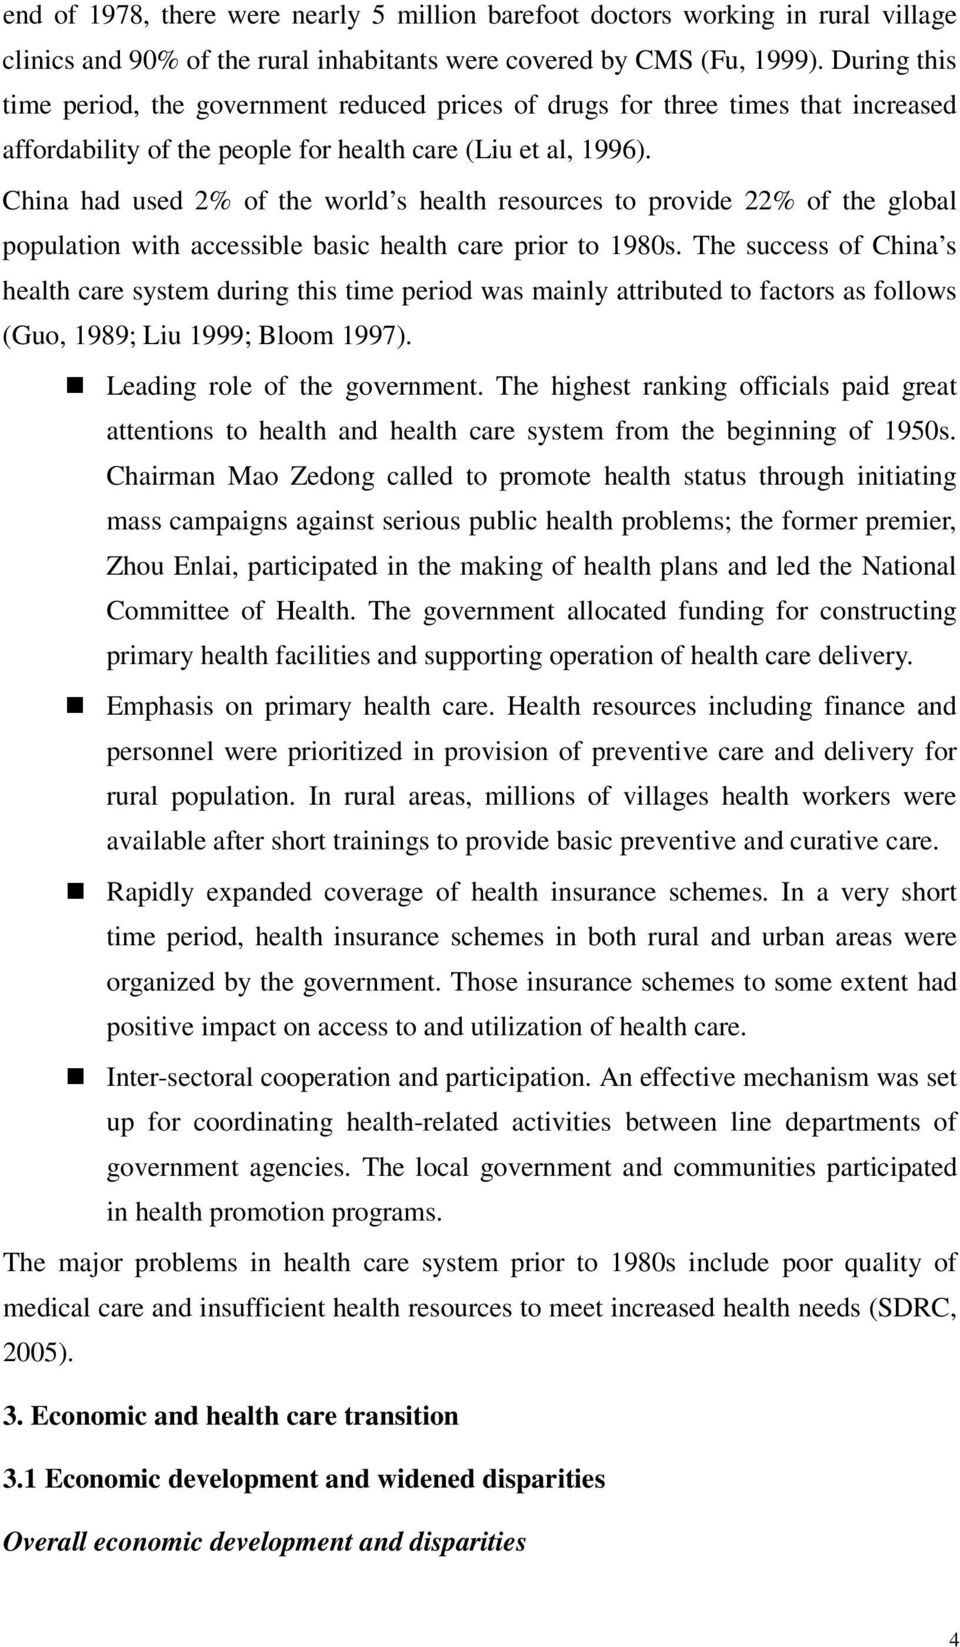 China had used 2% of the world s health resources to provide 22% of the global population with accessible basic health care prior to 1980s.